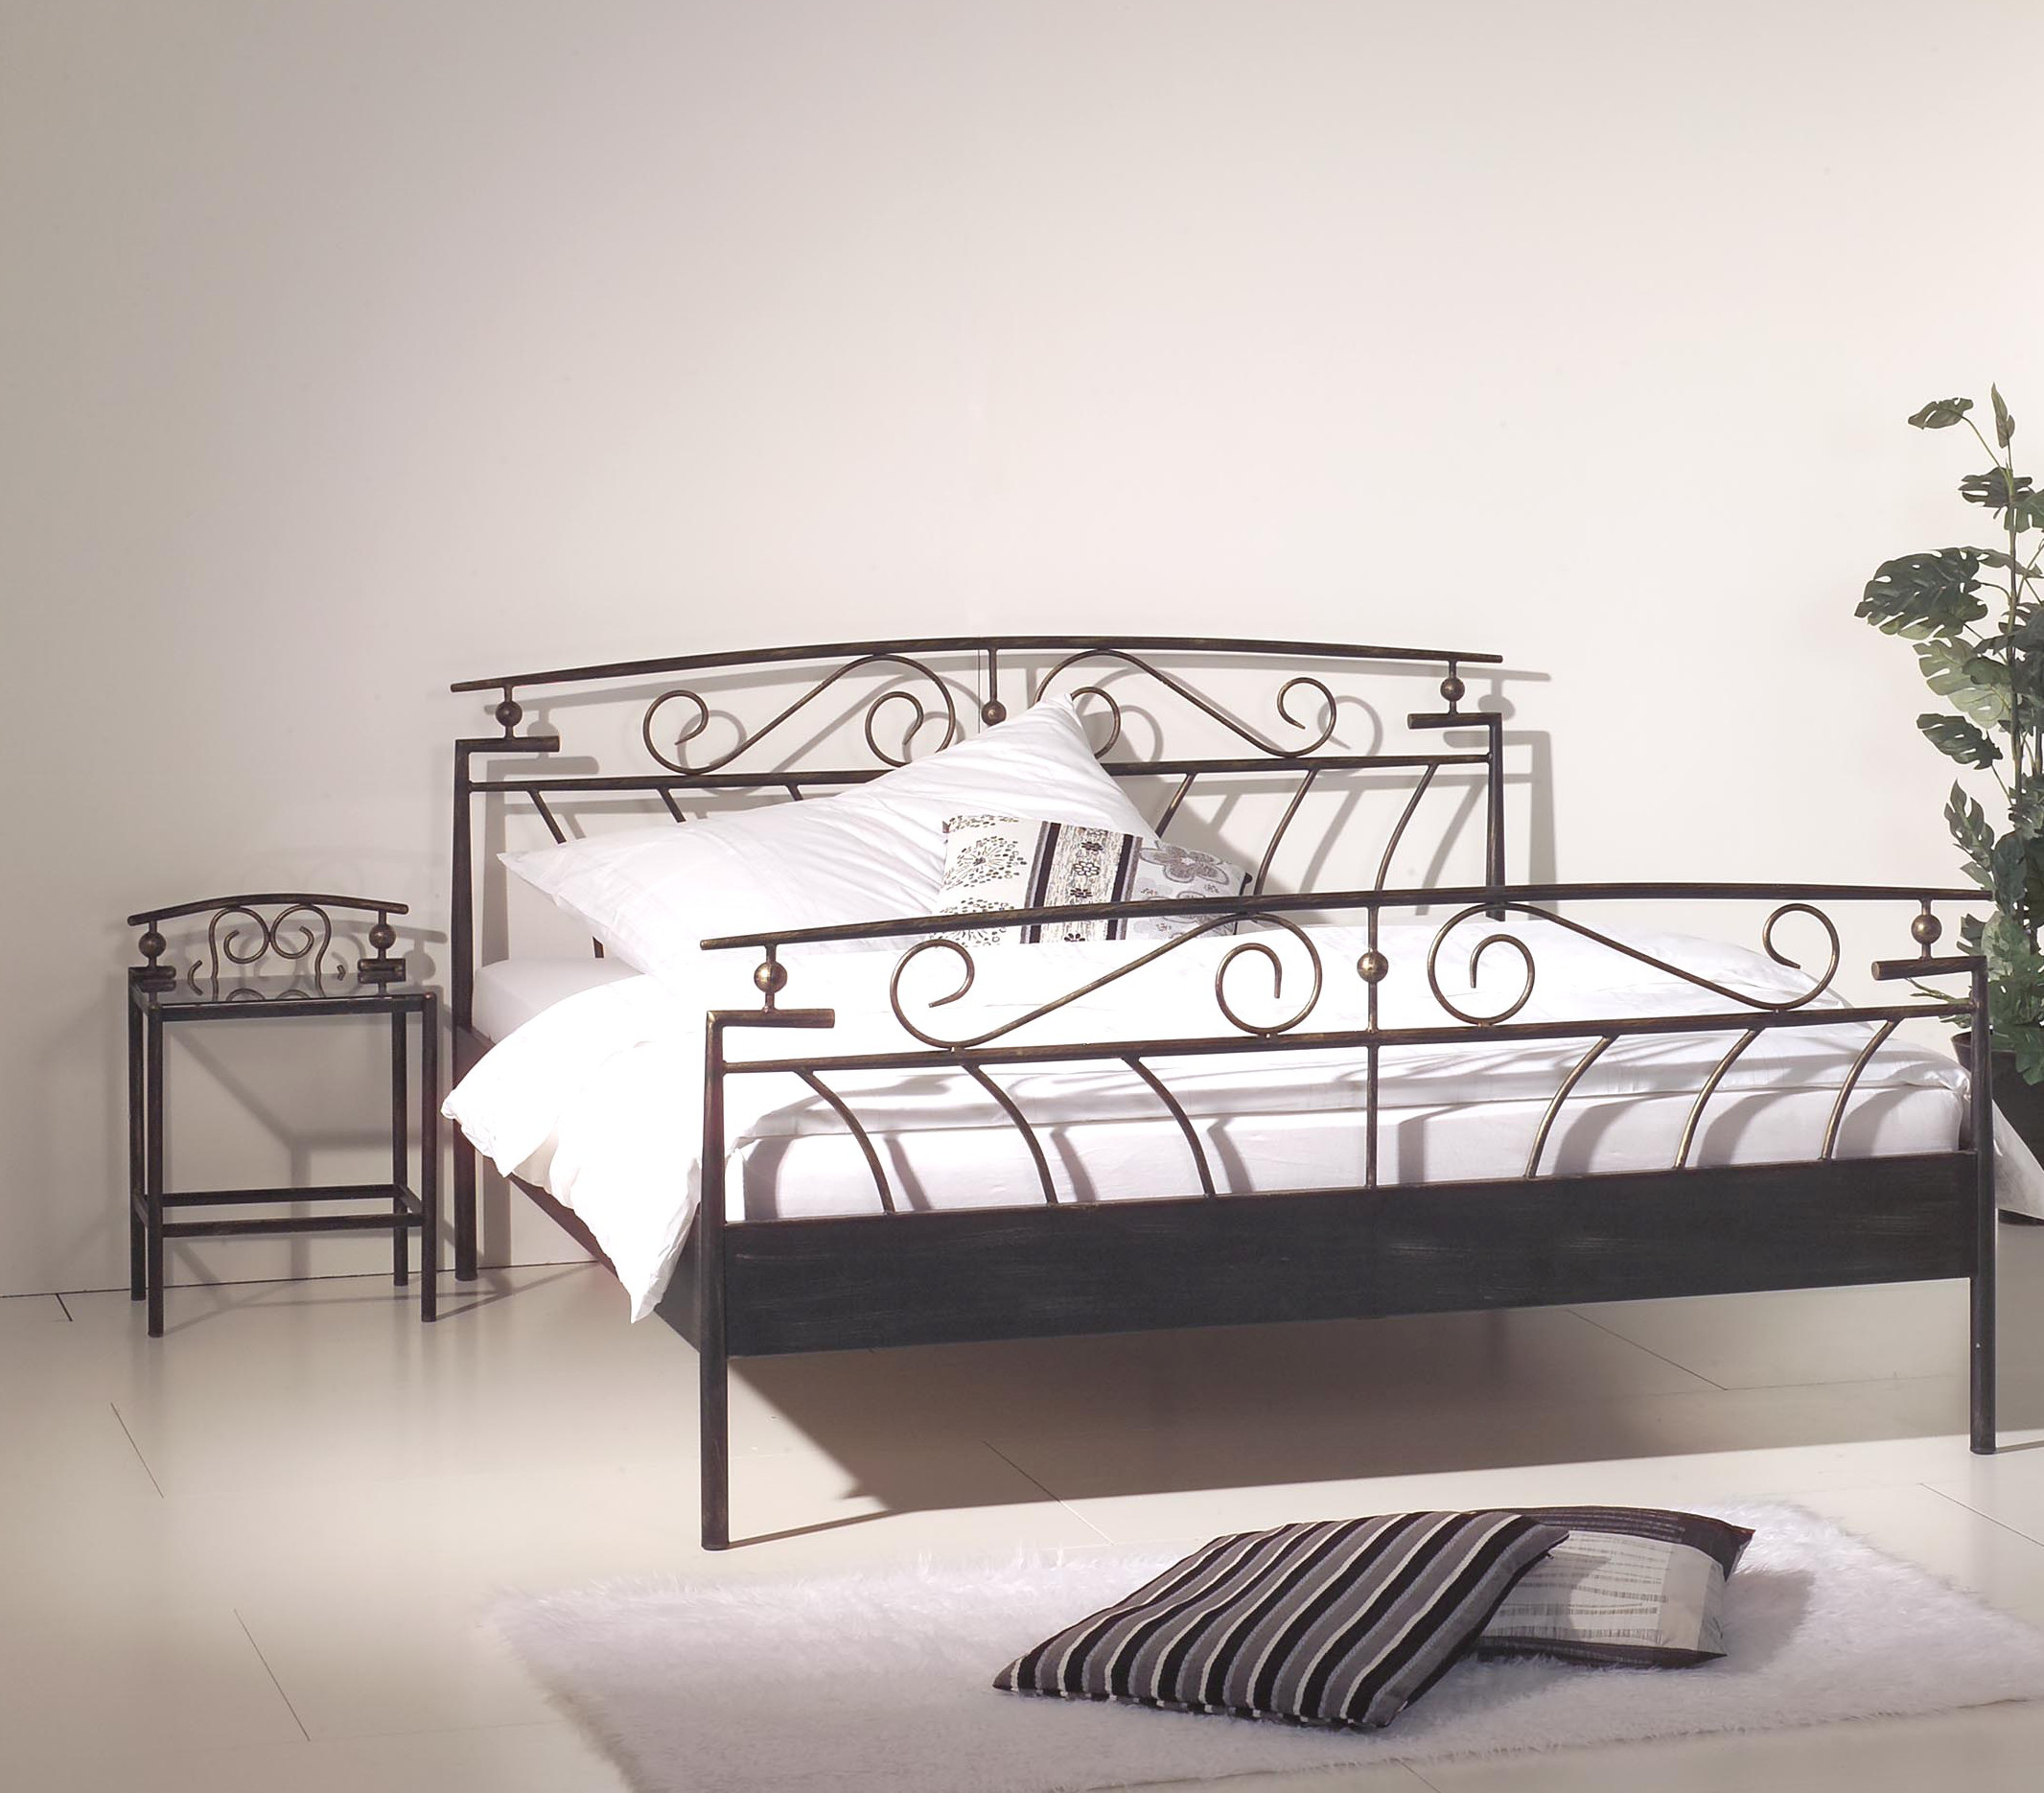 romantisches metallbett florenz 140 x 200 cm 160 x 200 cm. Black Bedroom Furniture Sets. Home Design Ideas